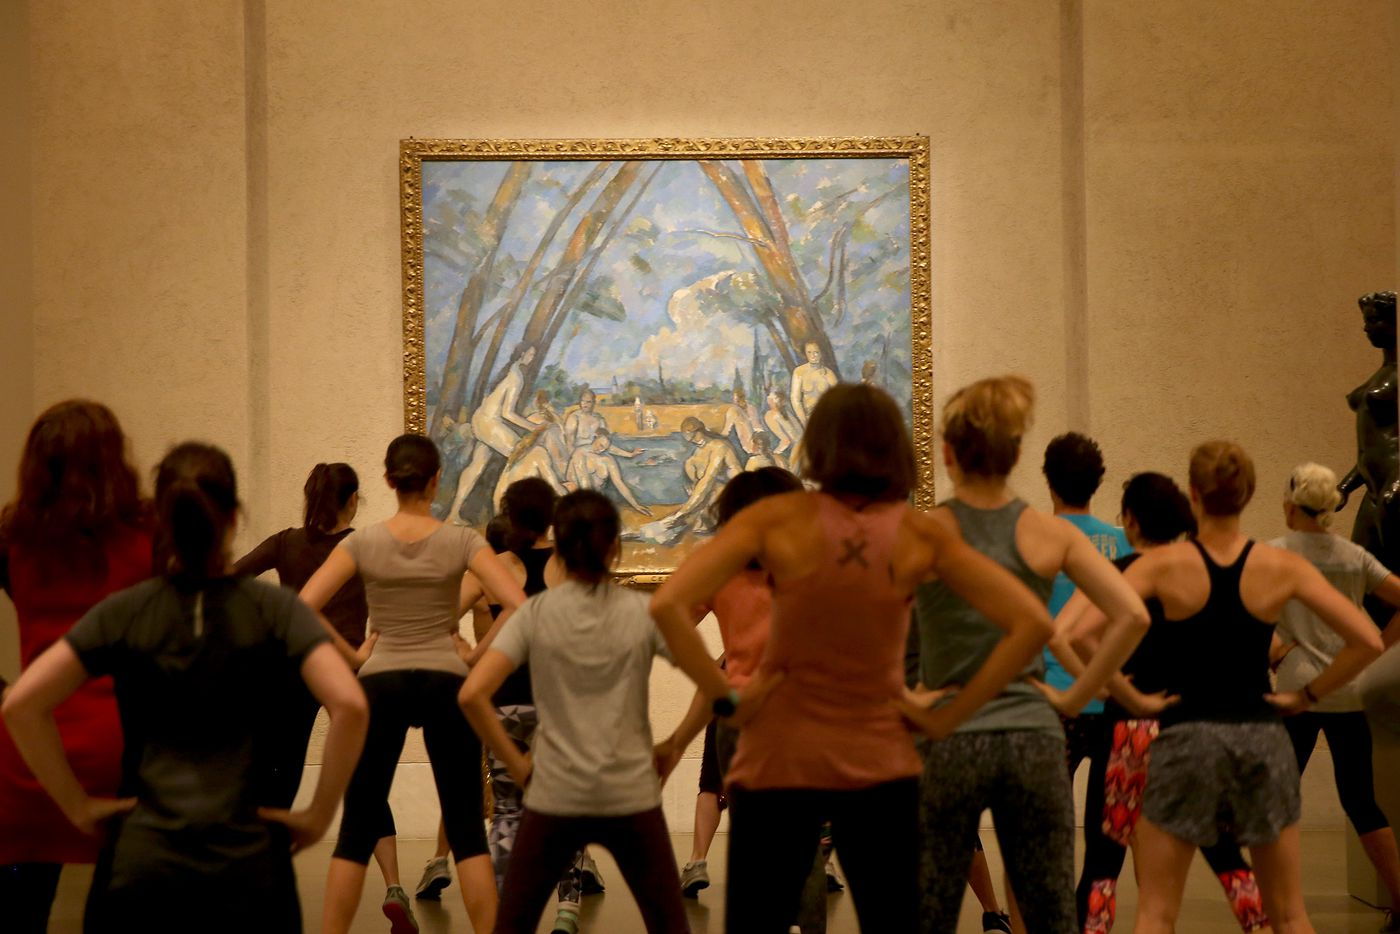 I sweated to oldies inside the Art Museum and tried not to bump into 'The Bathers'